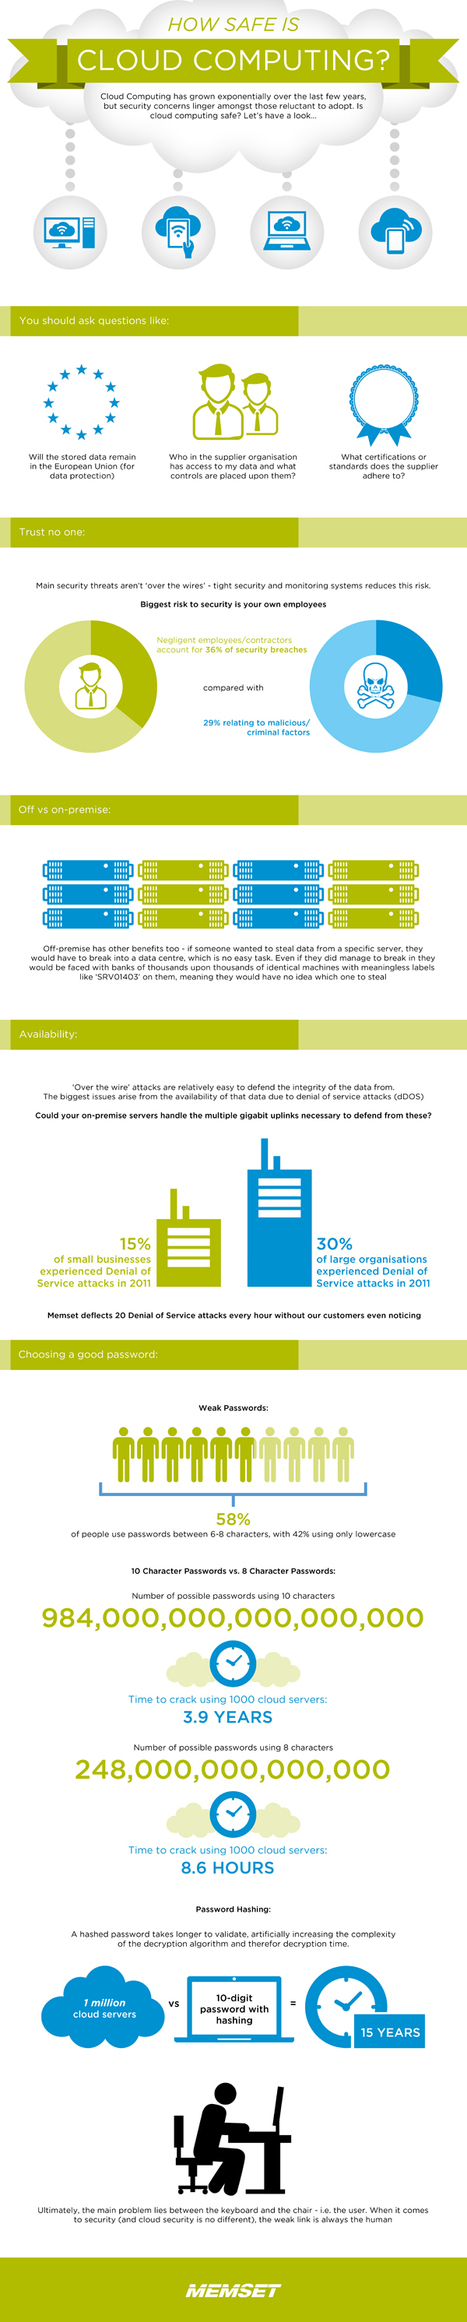 INFOGRAPHIC: How Safe is The Cloud? | Social Media Resources & e-learning | Scoop.it